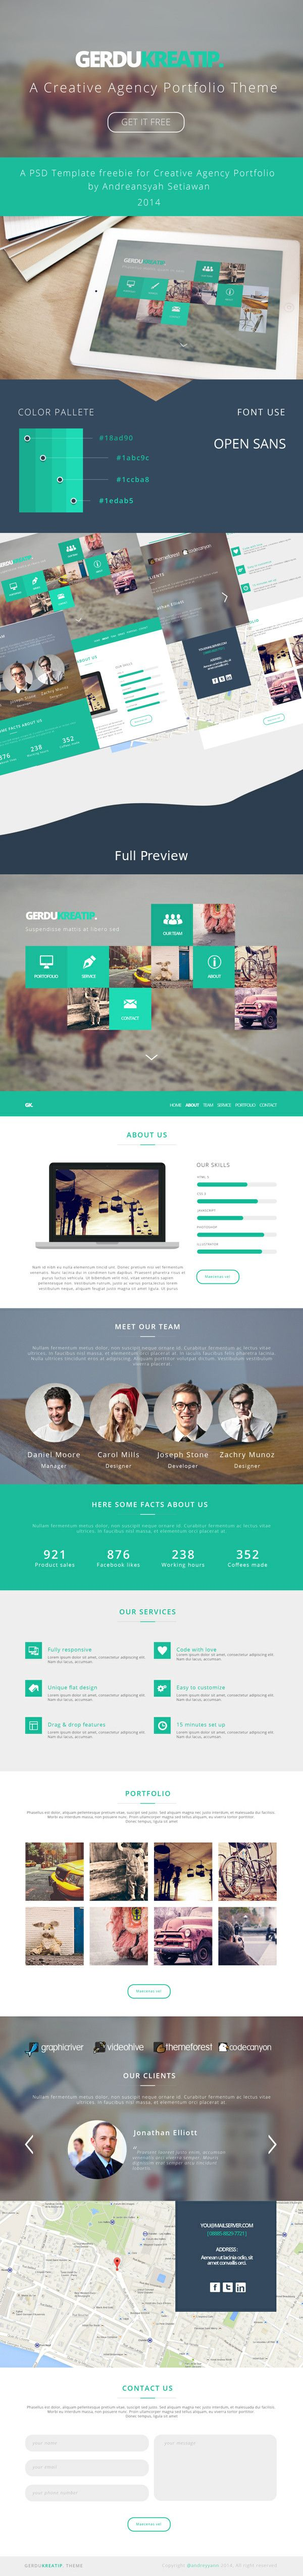 GerduKreatip: Agency Portfolio Theme | GraphicBurger